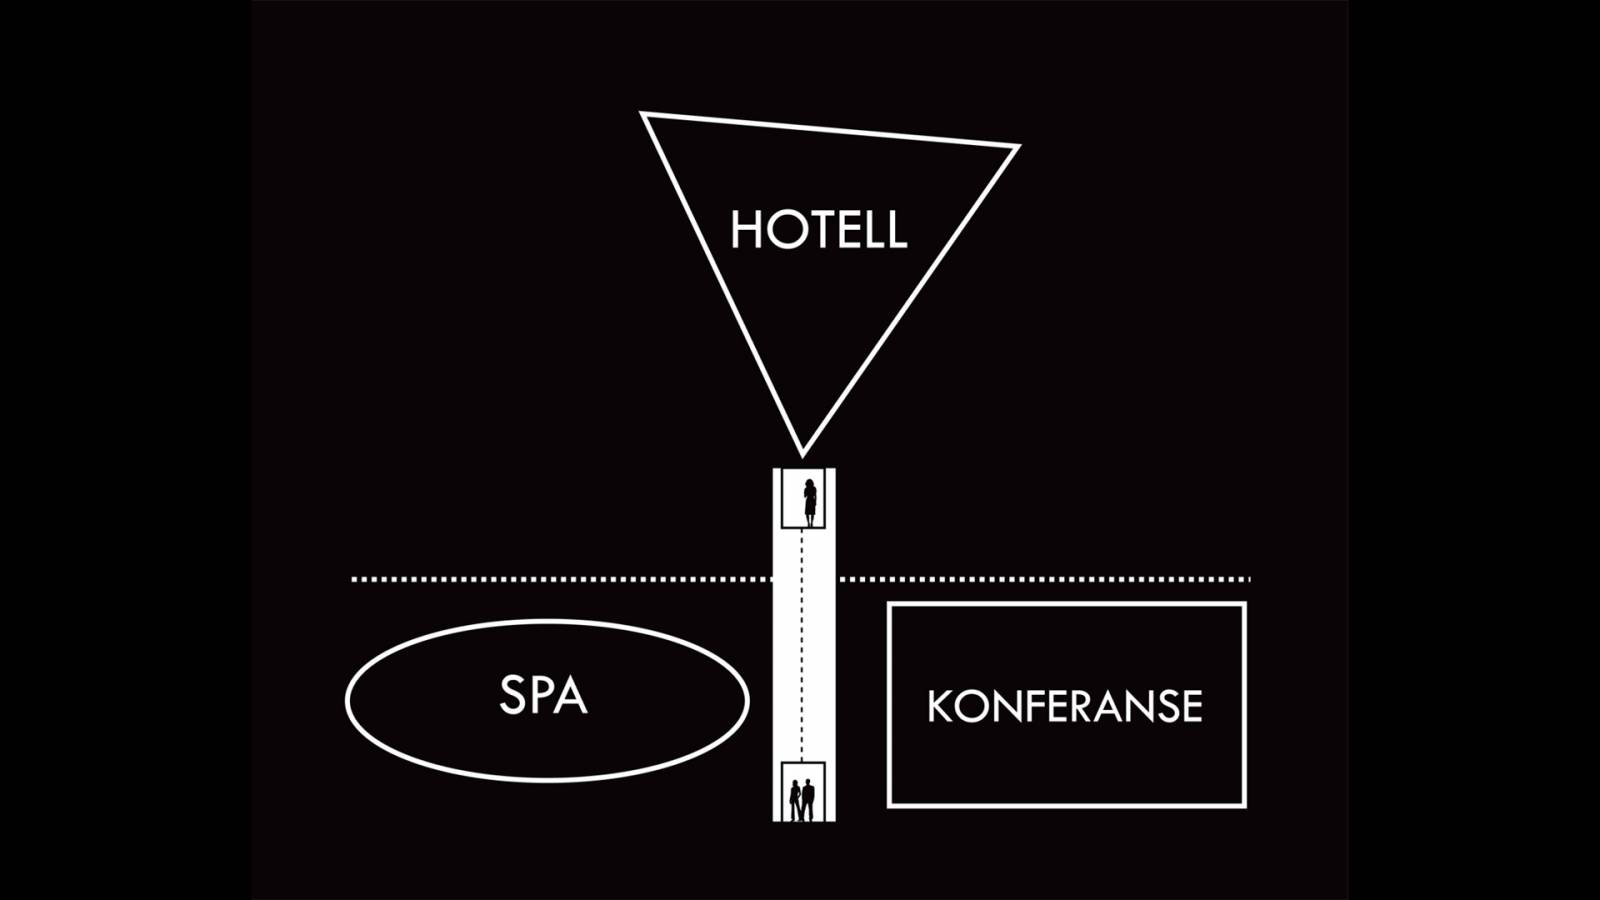 PROGRAMME - Lernacken Hotel - SPOL Architects